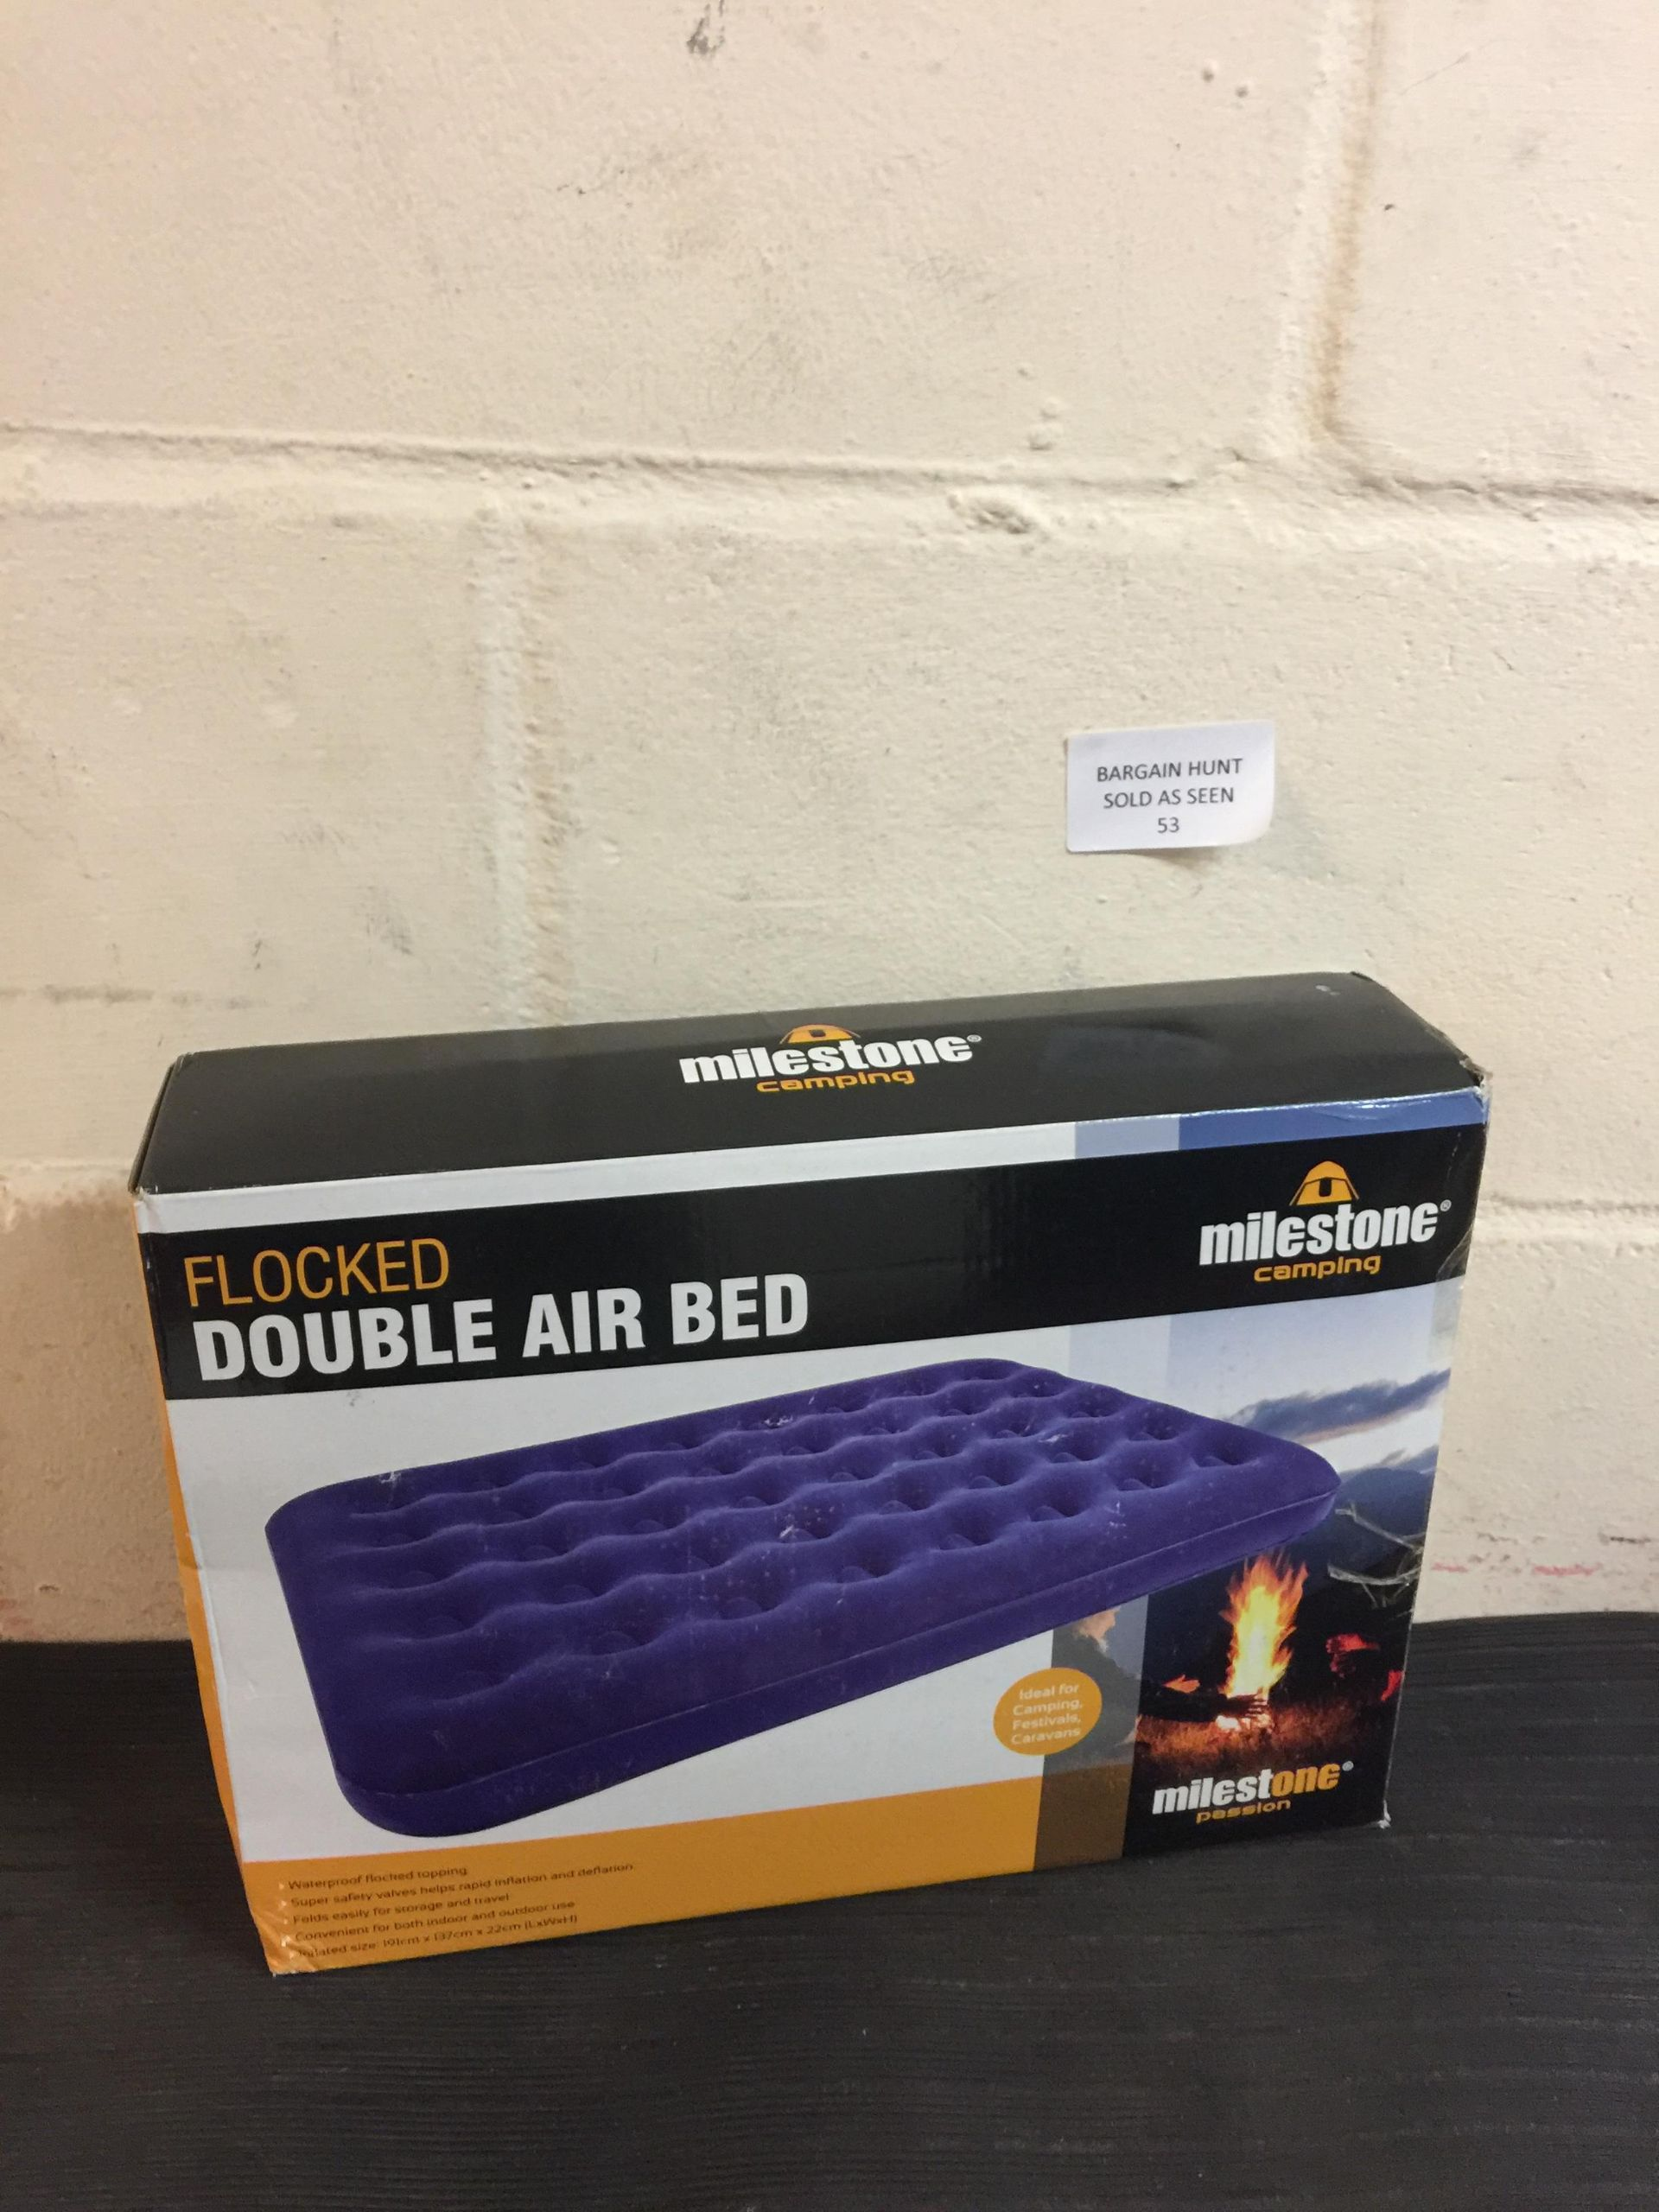 Lot 53 - Milestone Flocked Double Air Bed